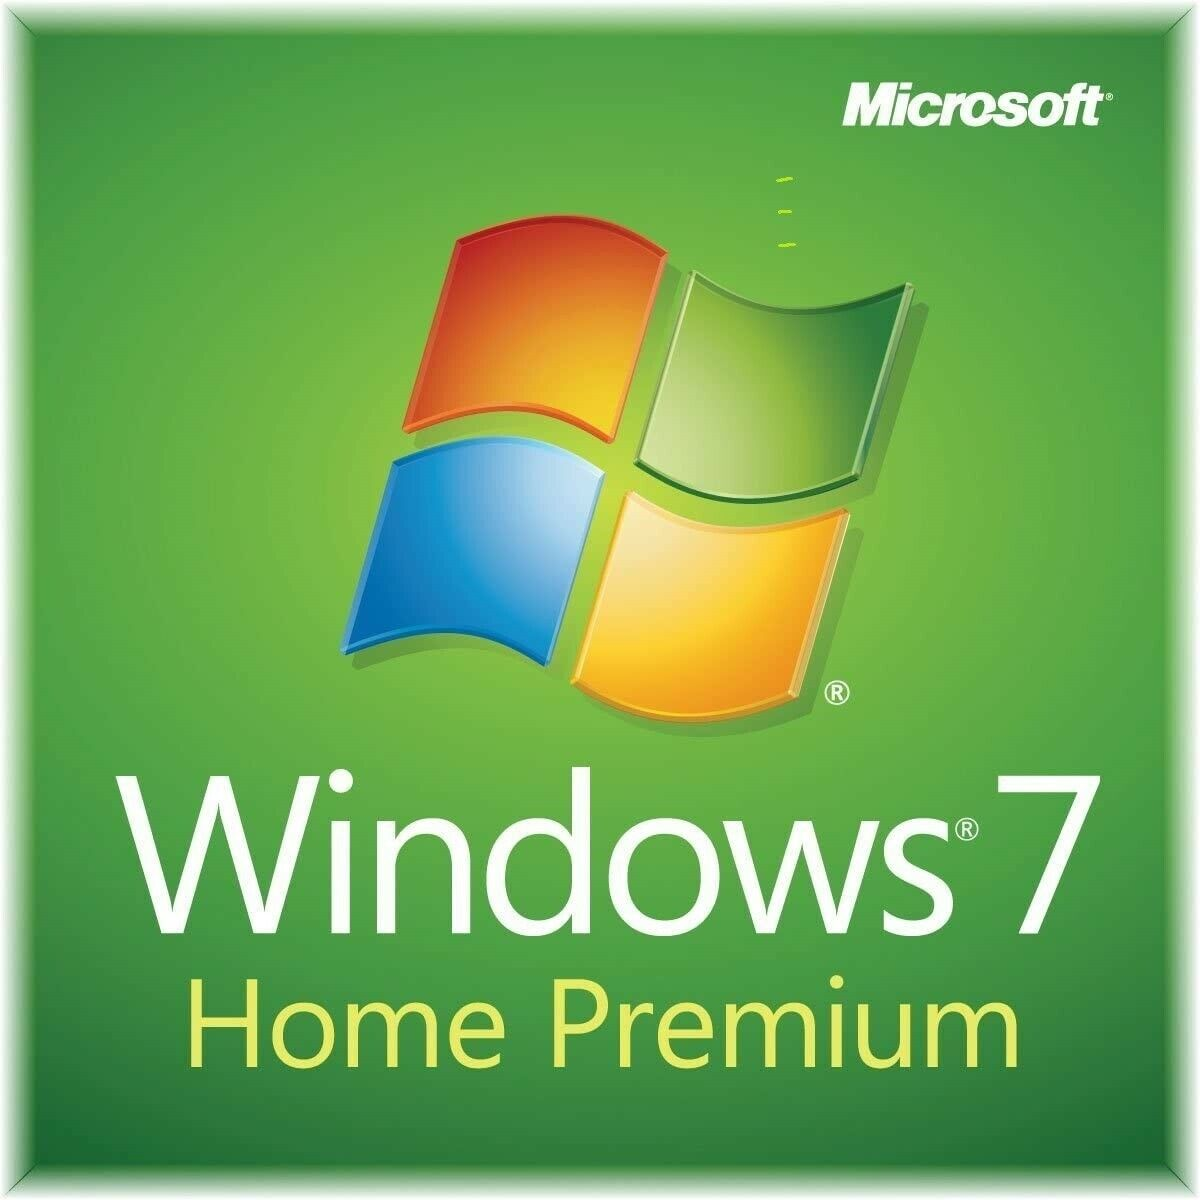 Microsoft Windows 7 Home Premium HP 32 64 Full Version SP1 Product Key + DVD